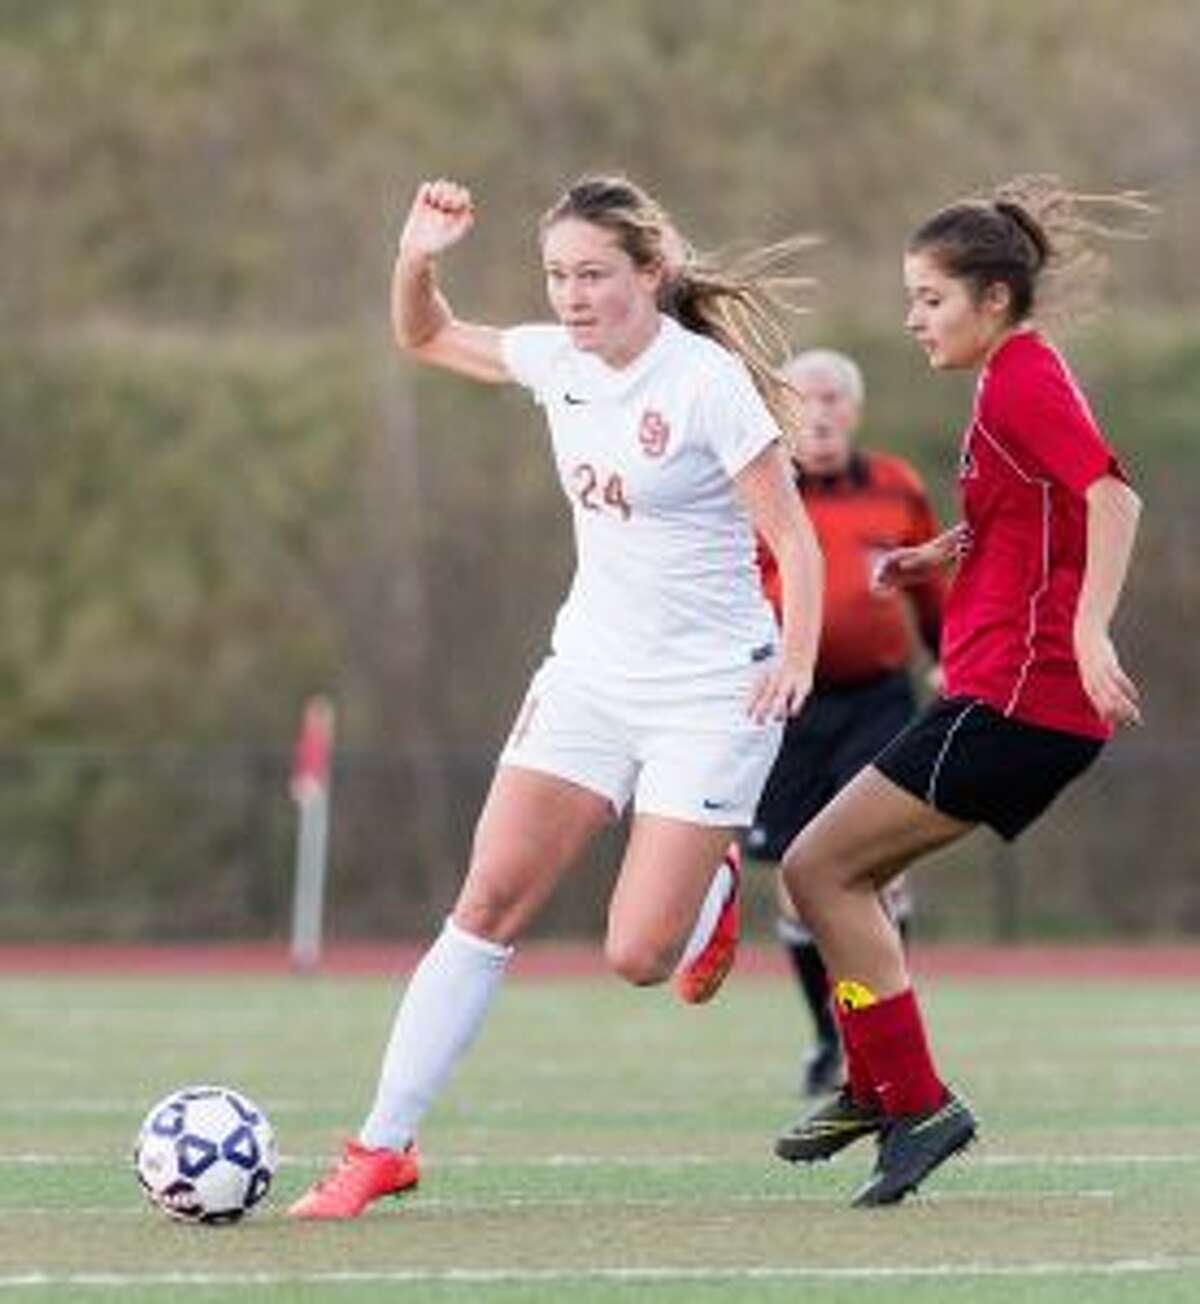 The Cadets' Lindsey Savko scored two goals, including her 30th of the season.